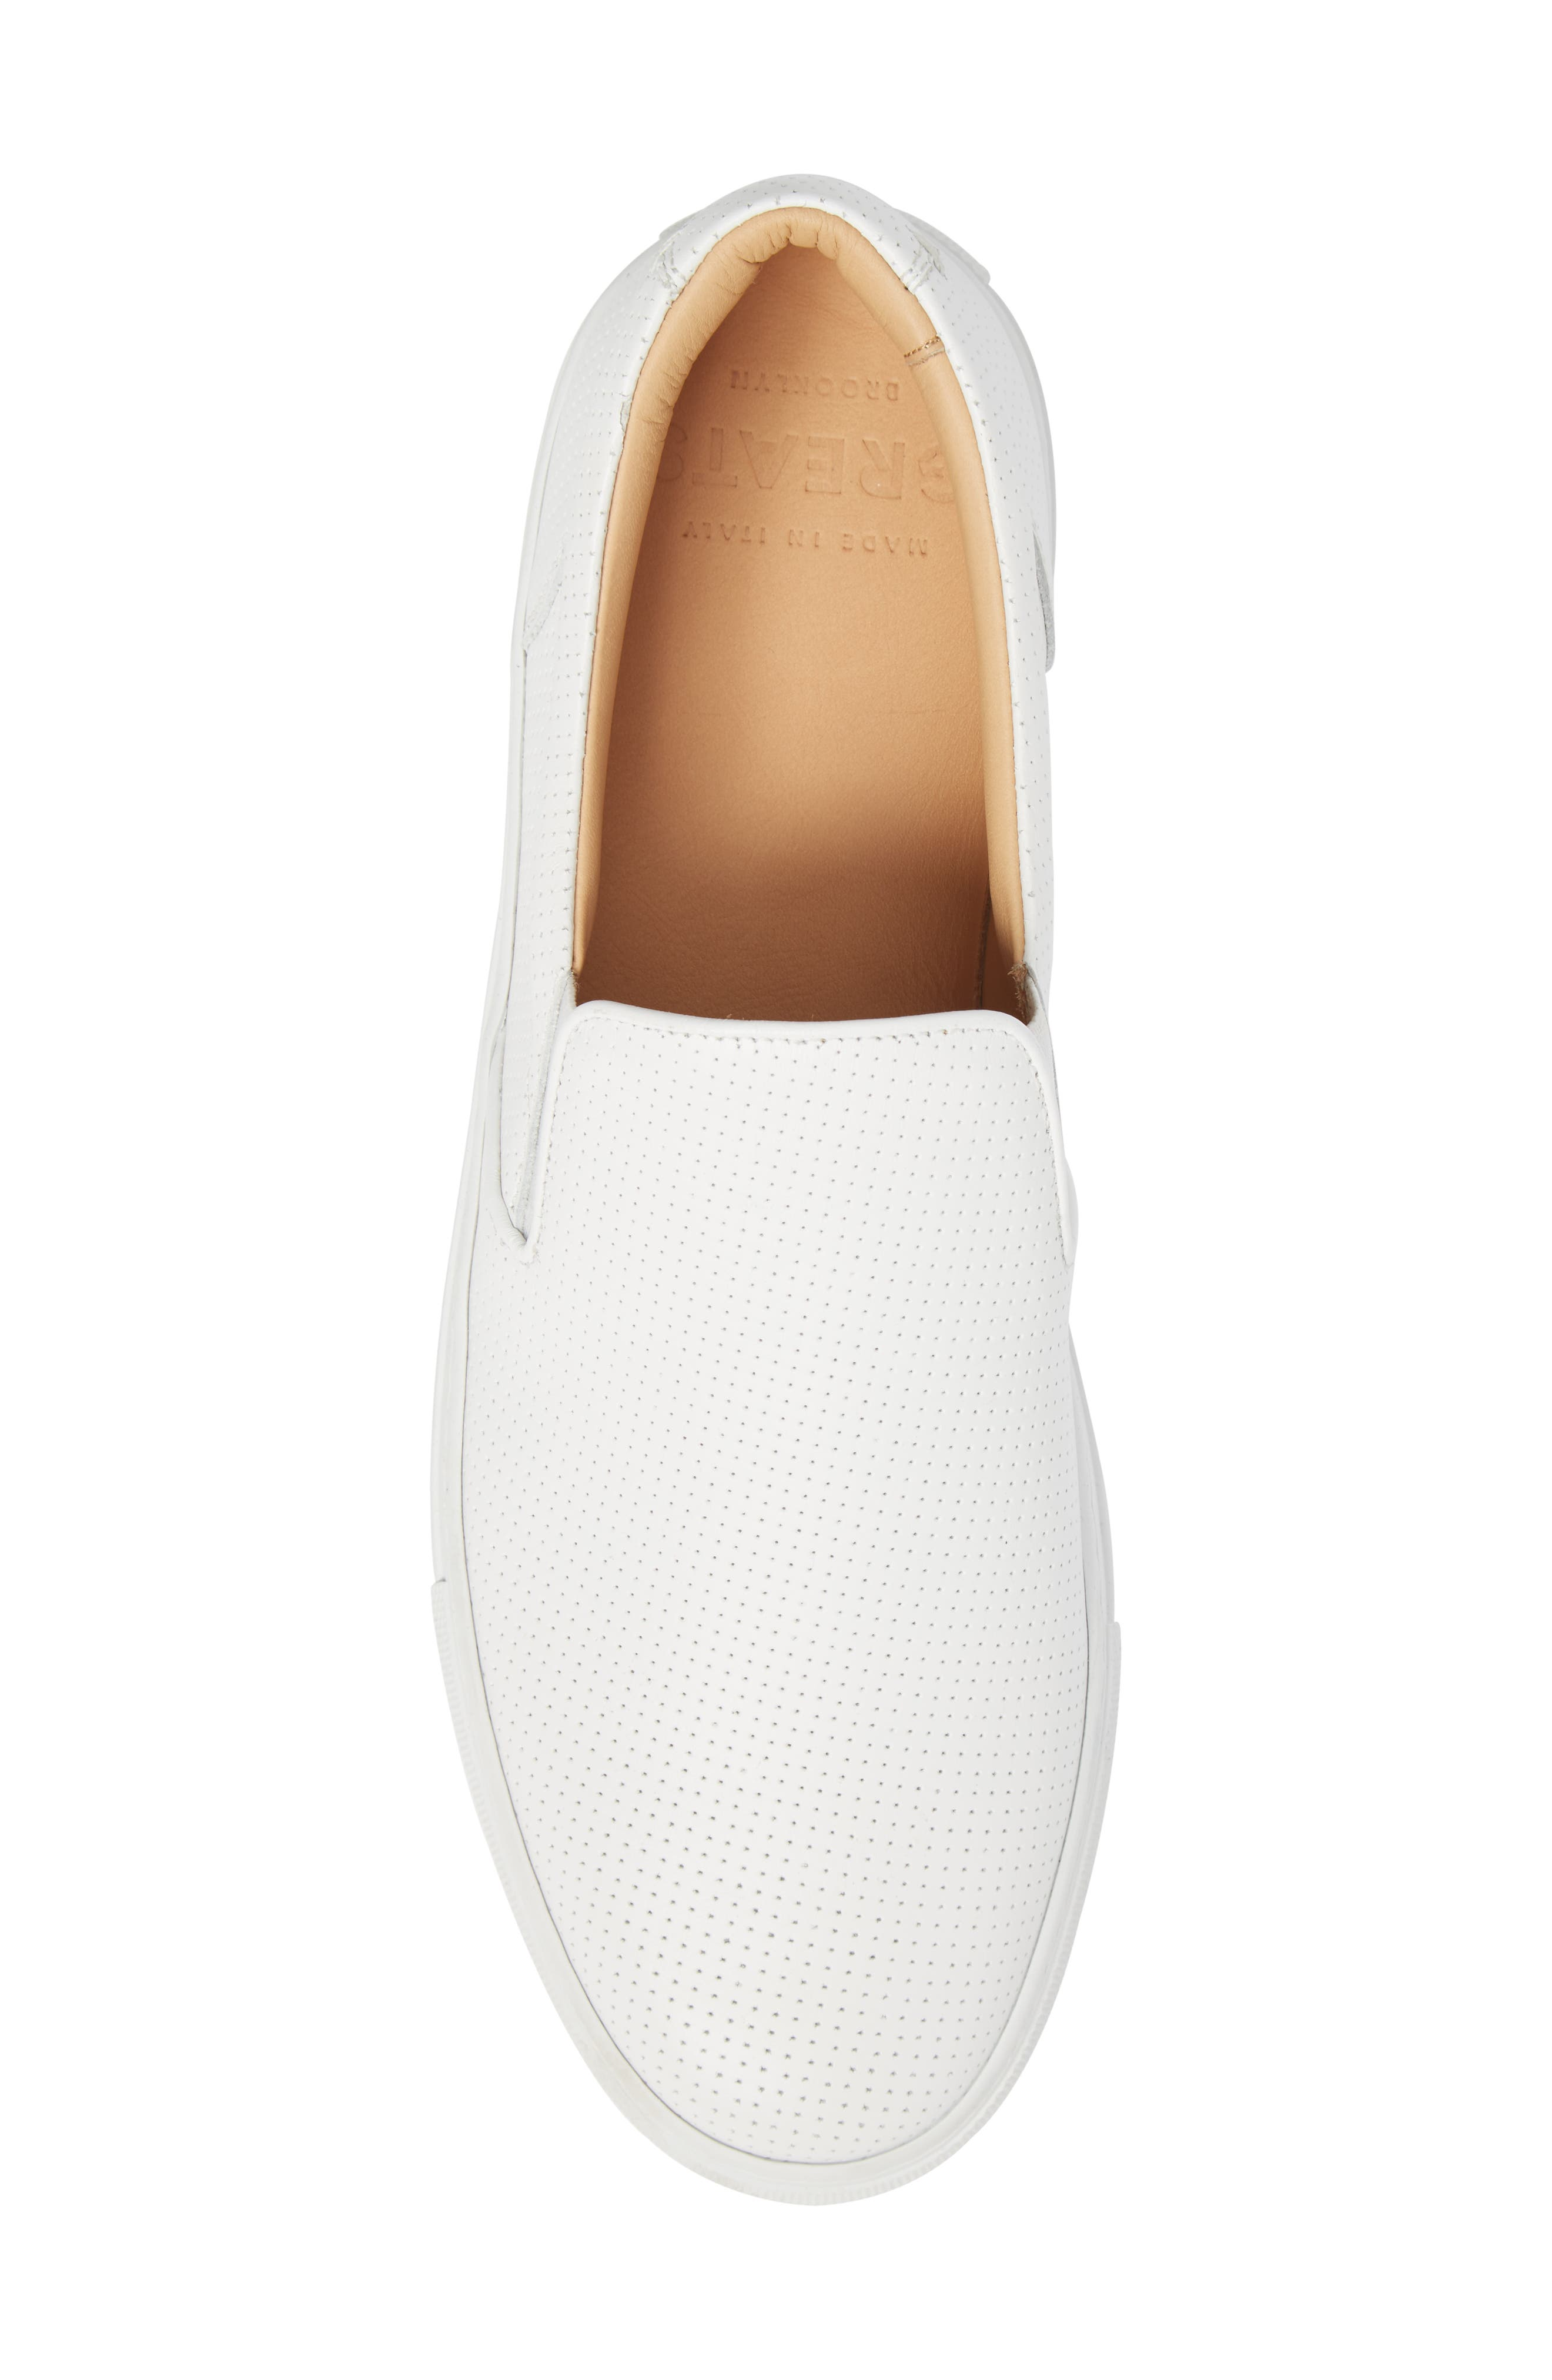 Wooster Slip-On Sneaker,                             Alternate thumbnail 5, color,                             WHITE PERFORATED LEATHER